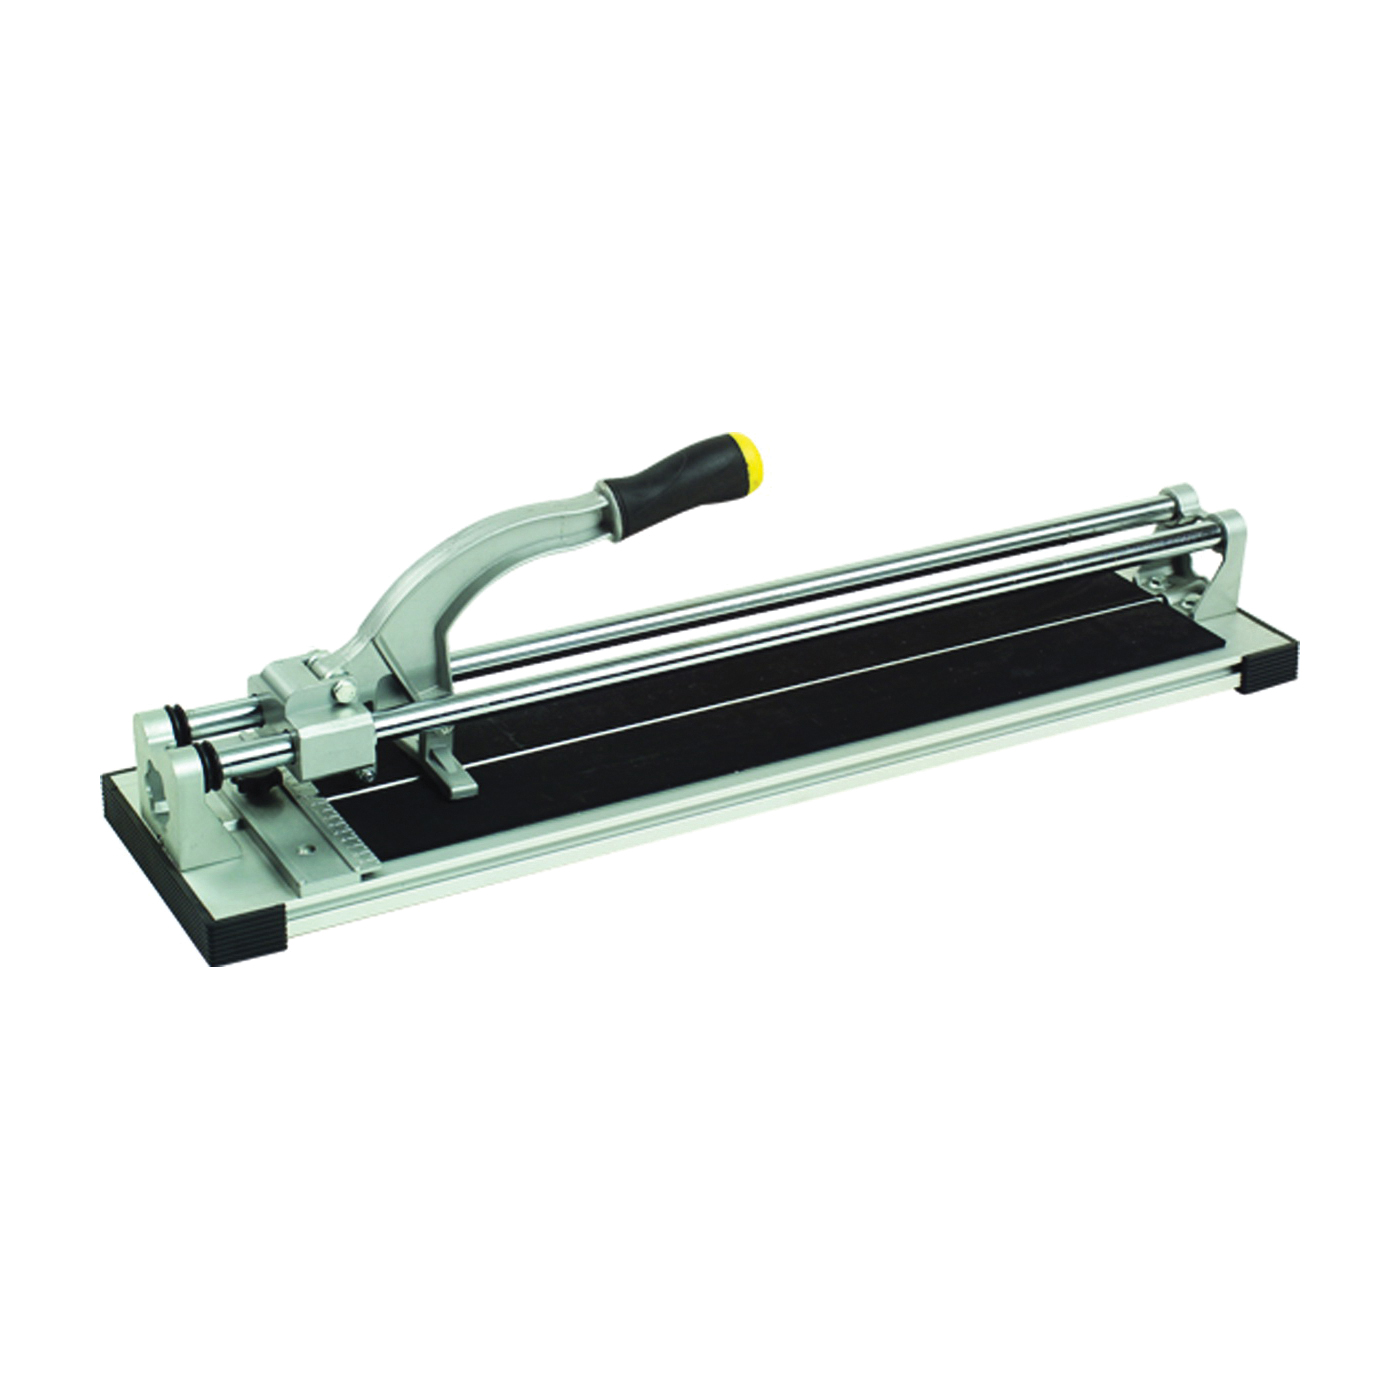 Picture of M-D 49905 Tile Cutter, 24 in Cutting Capacity, Cut Material: Steel